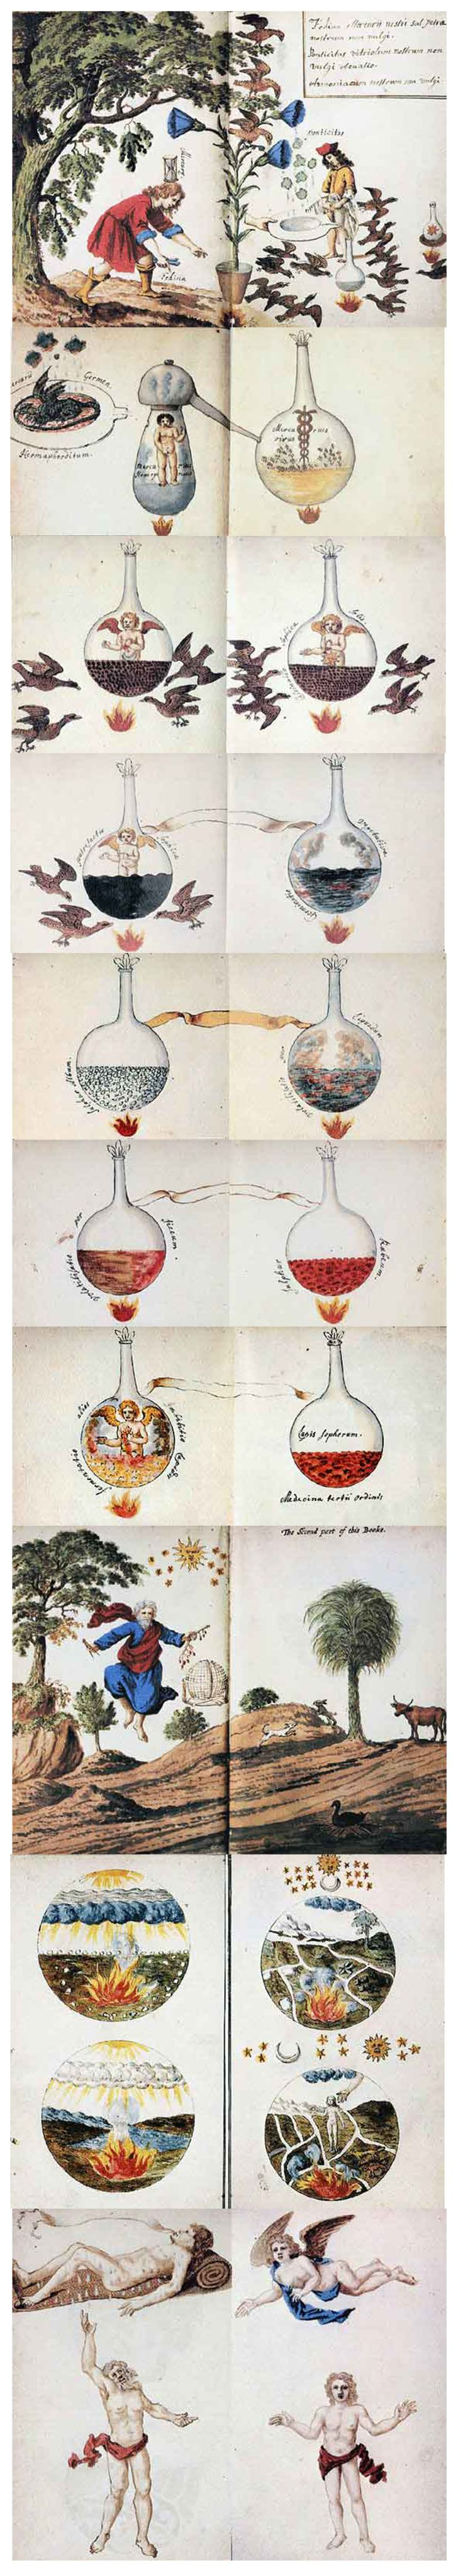 "Part 2: The alchemical processes of Transformation/Rebirth that ""treats of the change in human beings from blue-gold over black to white and rose: ""..there are ten bottles or retorts, each half filled with varicolored substances. These bottles can be so easily described that it is unnecessary to reproduce them. The first bottle (from the mouth of which issues a golden shrub with three blossoms) contains aBLUISH-GRAY liquid, the entire figure being called ""Our Quicksilver."" Under the vessel…"